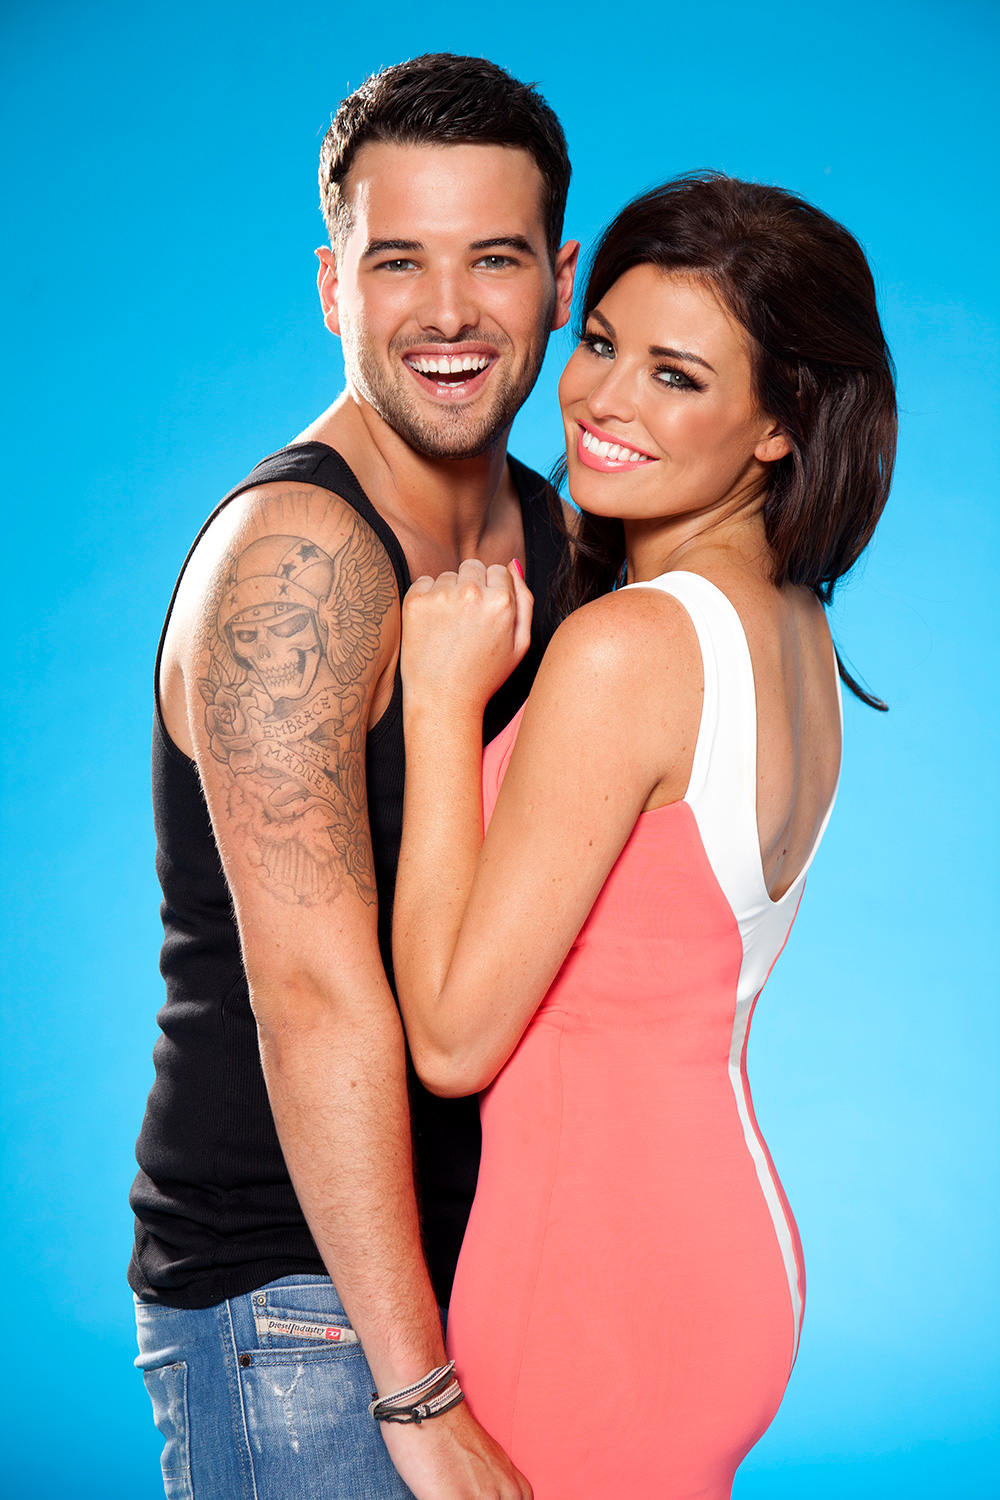 Jess-and-Ricky-Towie-097.jpg